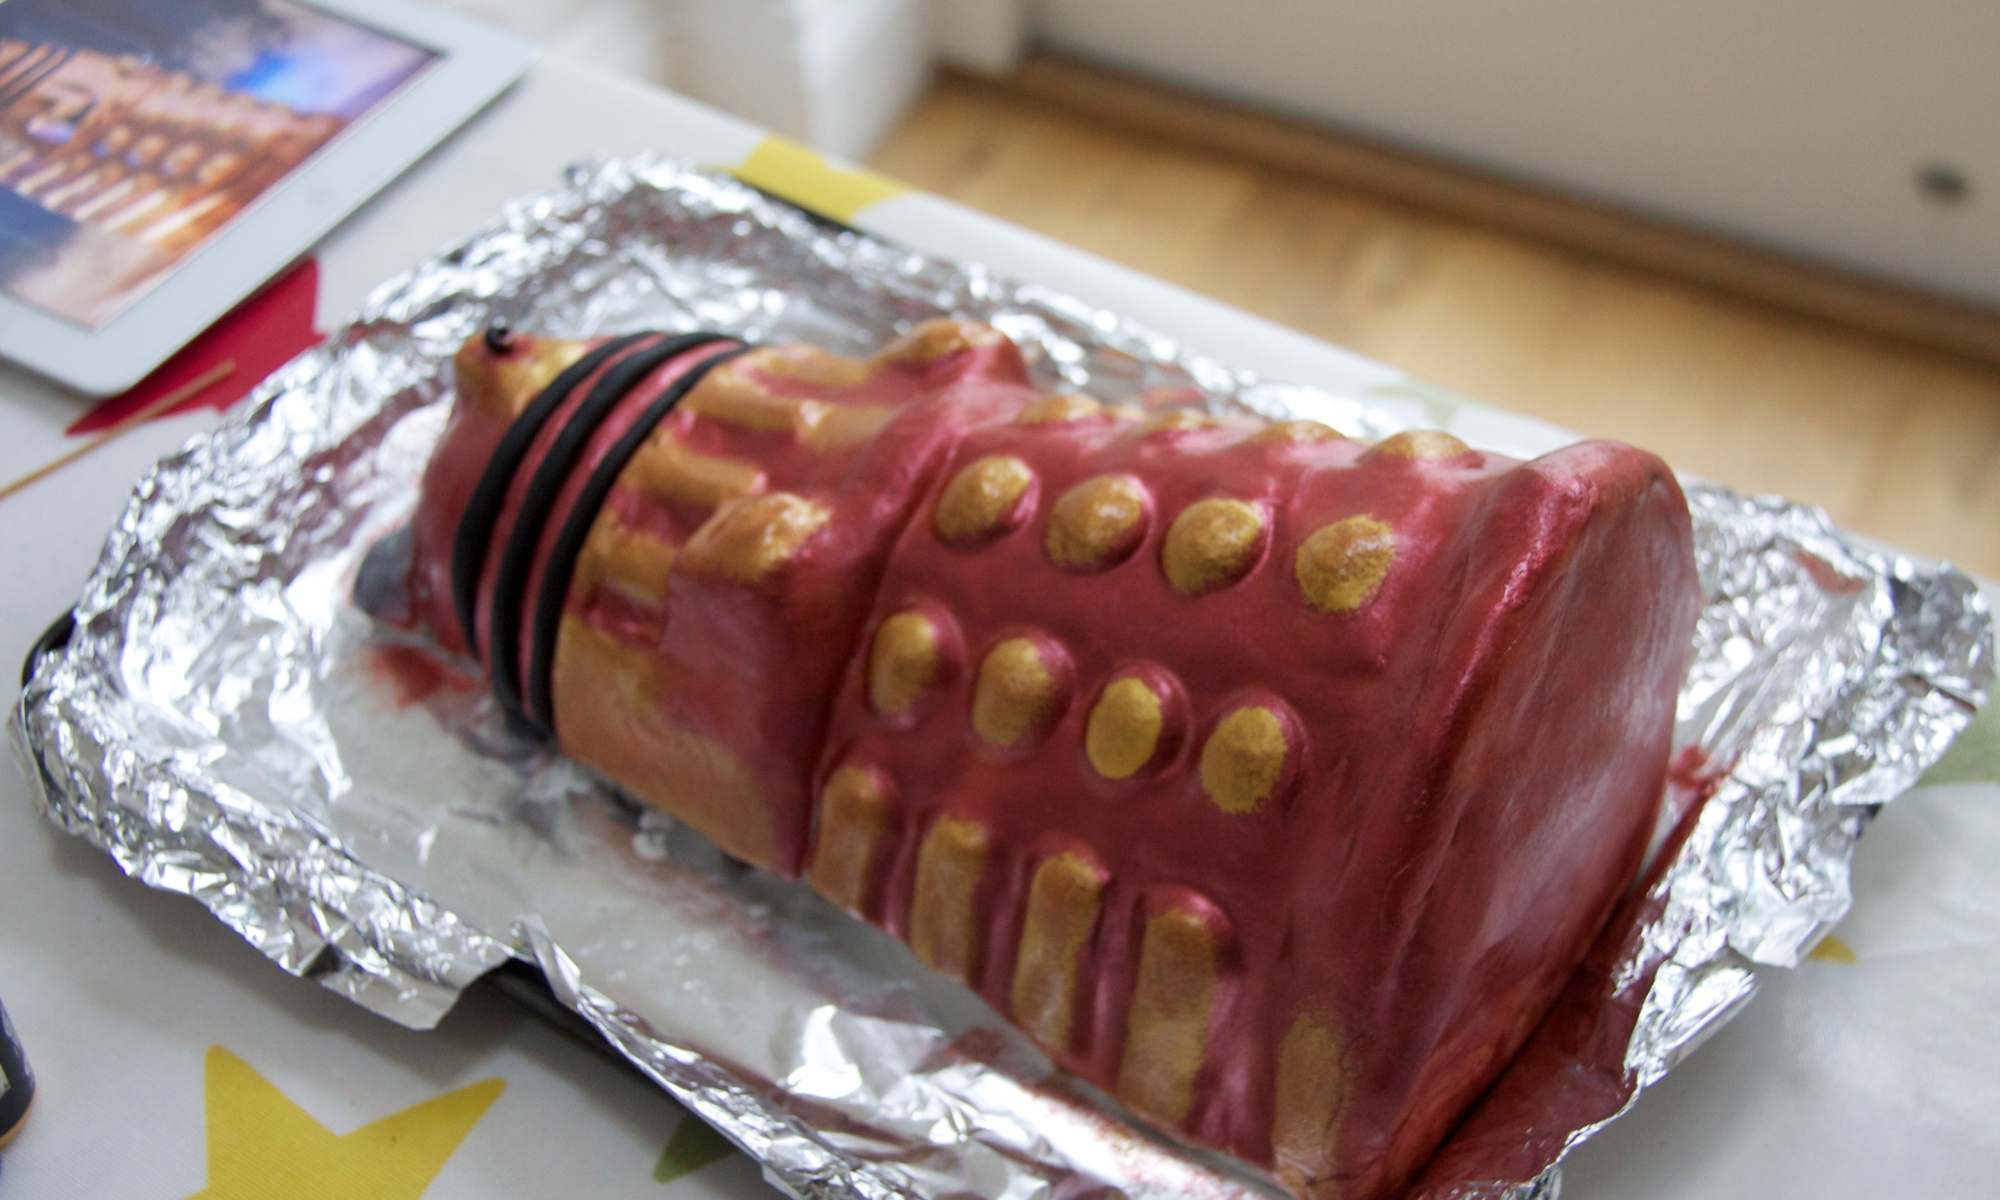 Lakeland hold the anchovies please to celebrate the fiftieth anniversary of dr who lakeland have launched a range of whovian kitchen paraphernalia the dalek cake mould is sturdy solutioingenieria Choice Image